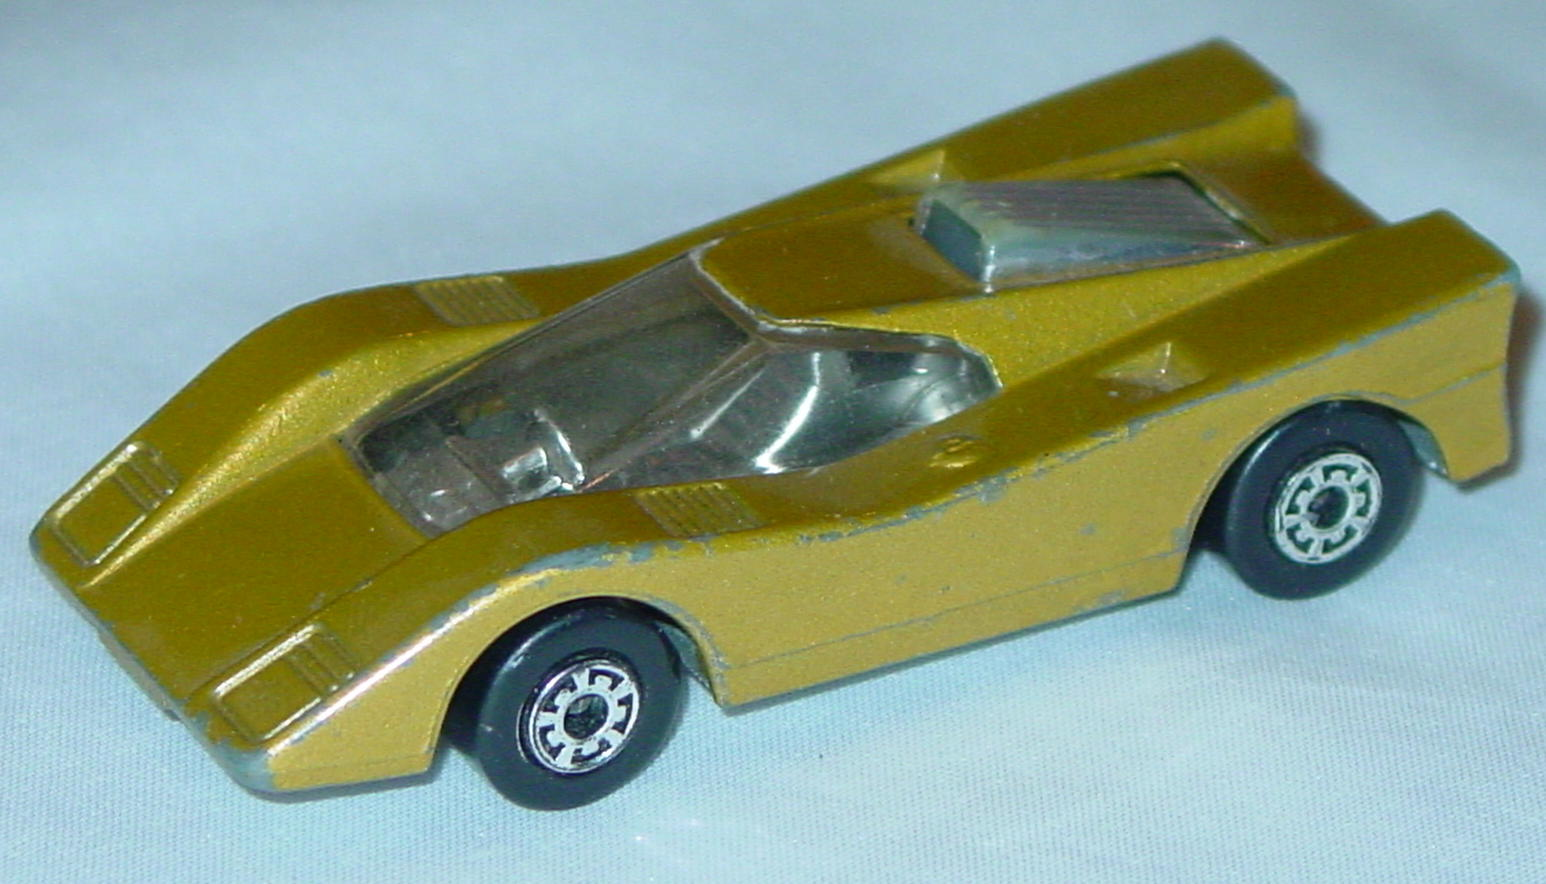 Bulgarian 07 B 3 - Flamin Manta met Gold met sil-grey base clear window